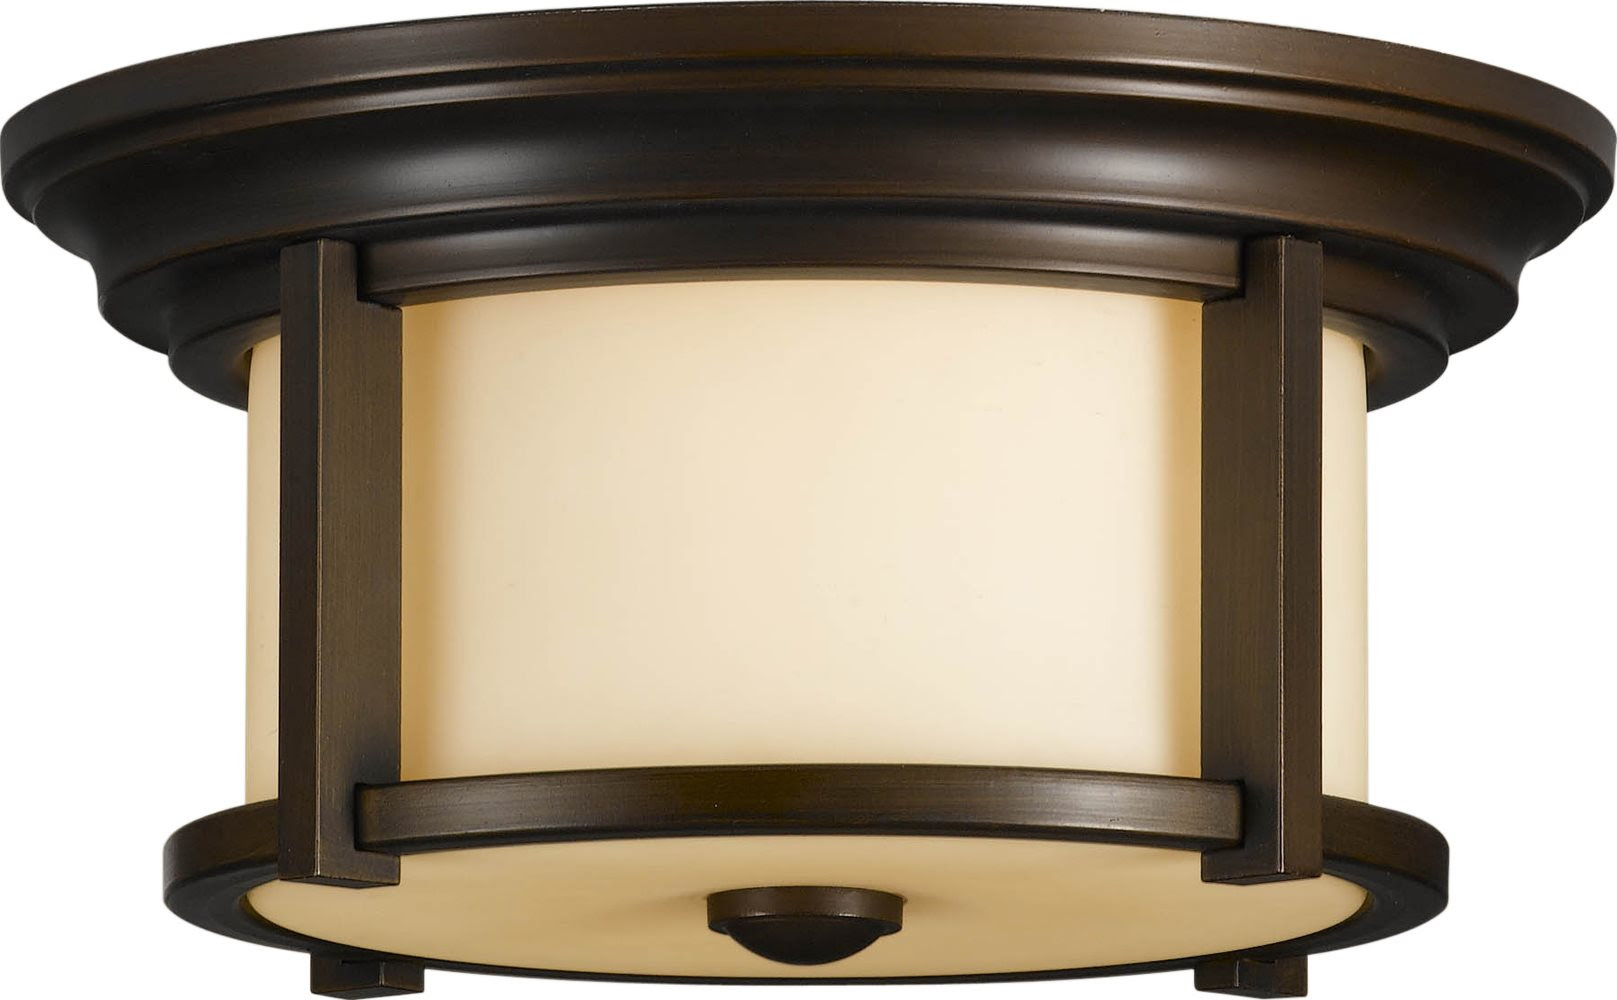 Merrill Transitional Outdoor Flush Mount Ceiling Light ...